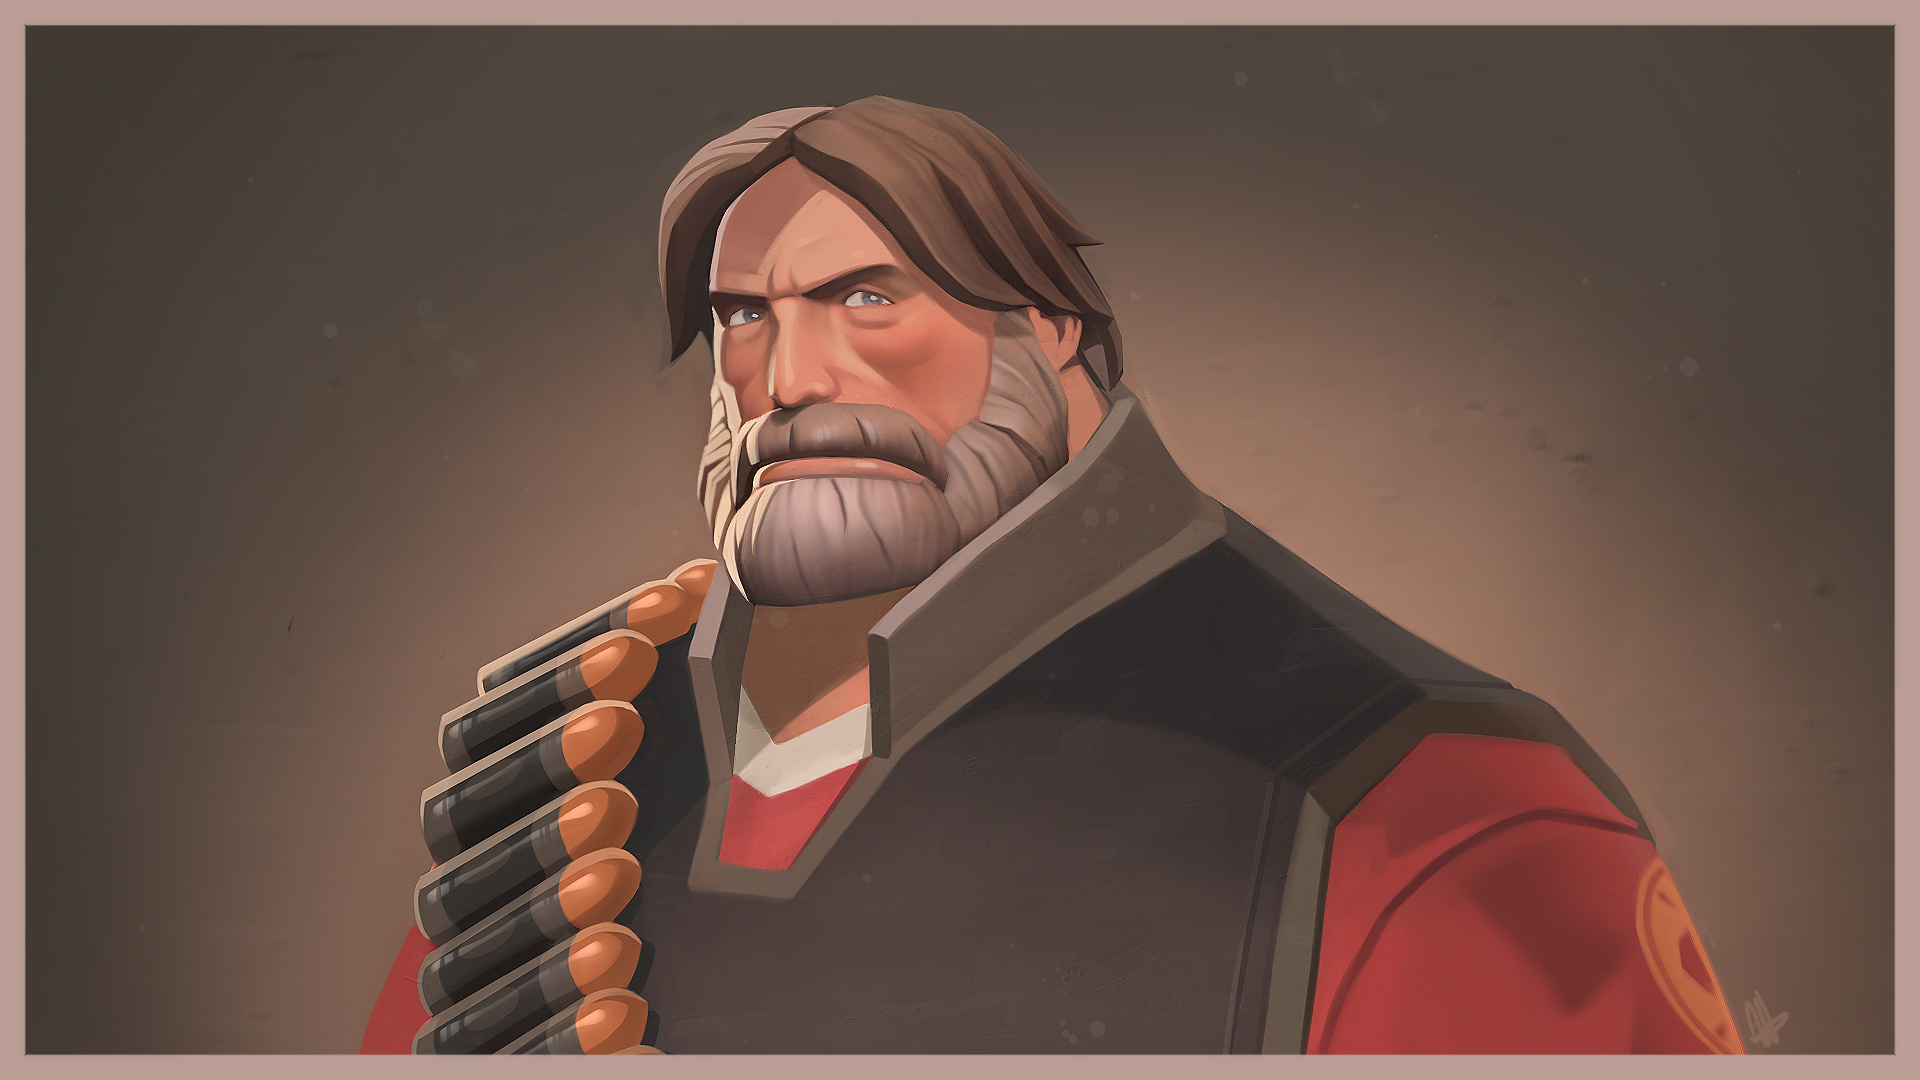 Gabe Newell In Team Fortress 2